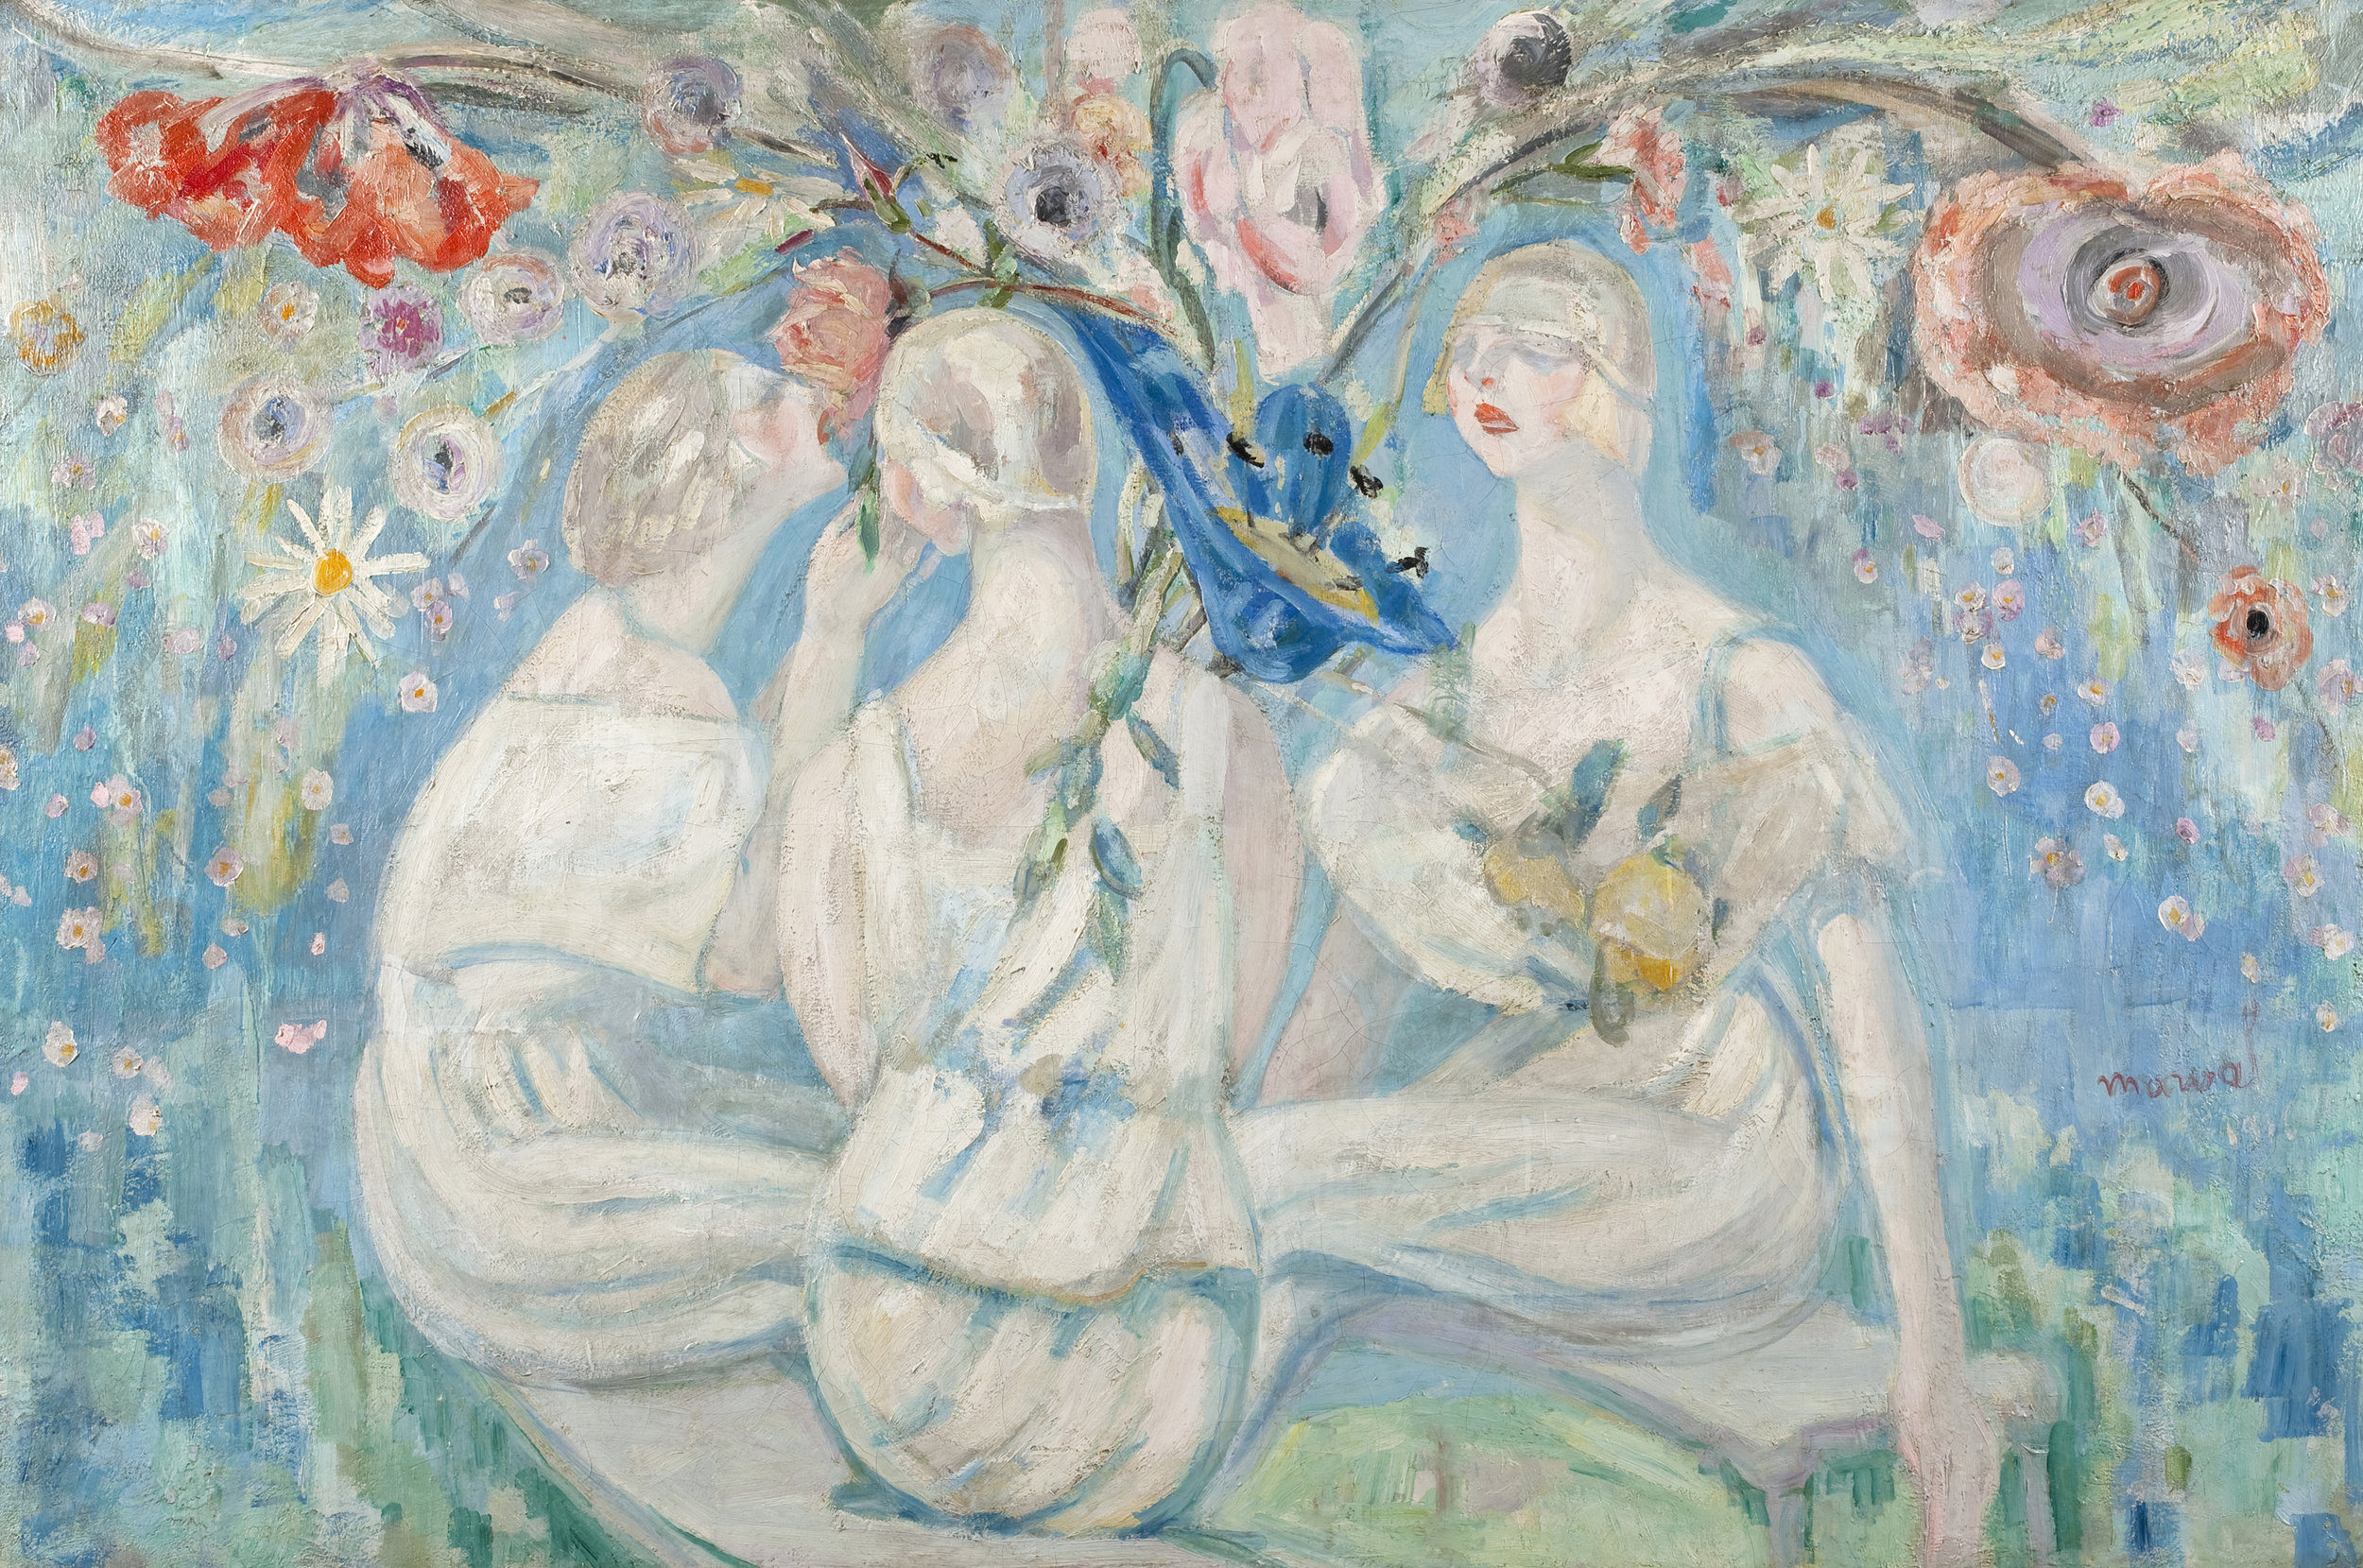 Un Bouquet pour la Victoire, Jacqueline Marval, c 1916. Oil on canvas, 130 x 195 cm. Private collection, Paris.